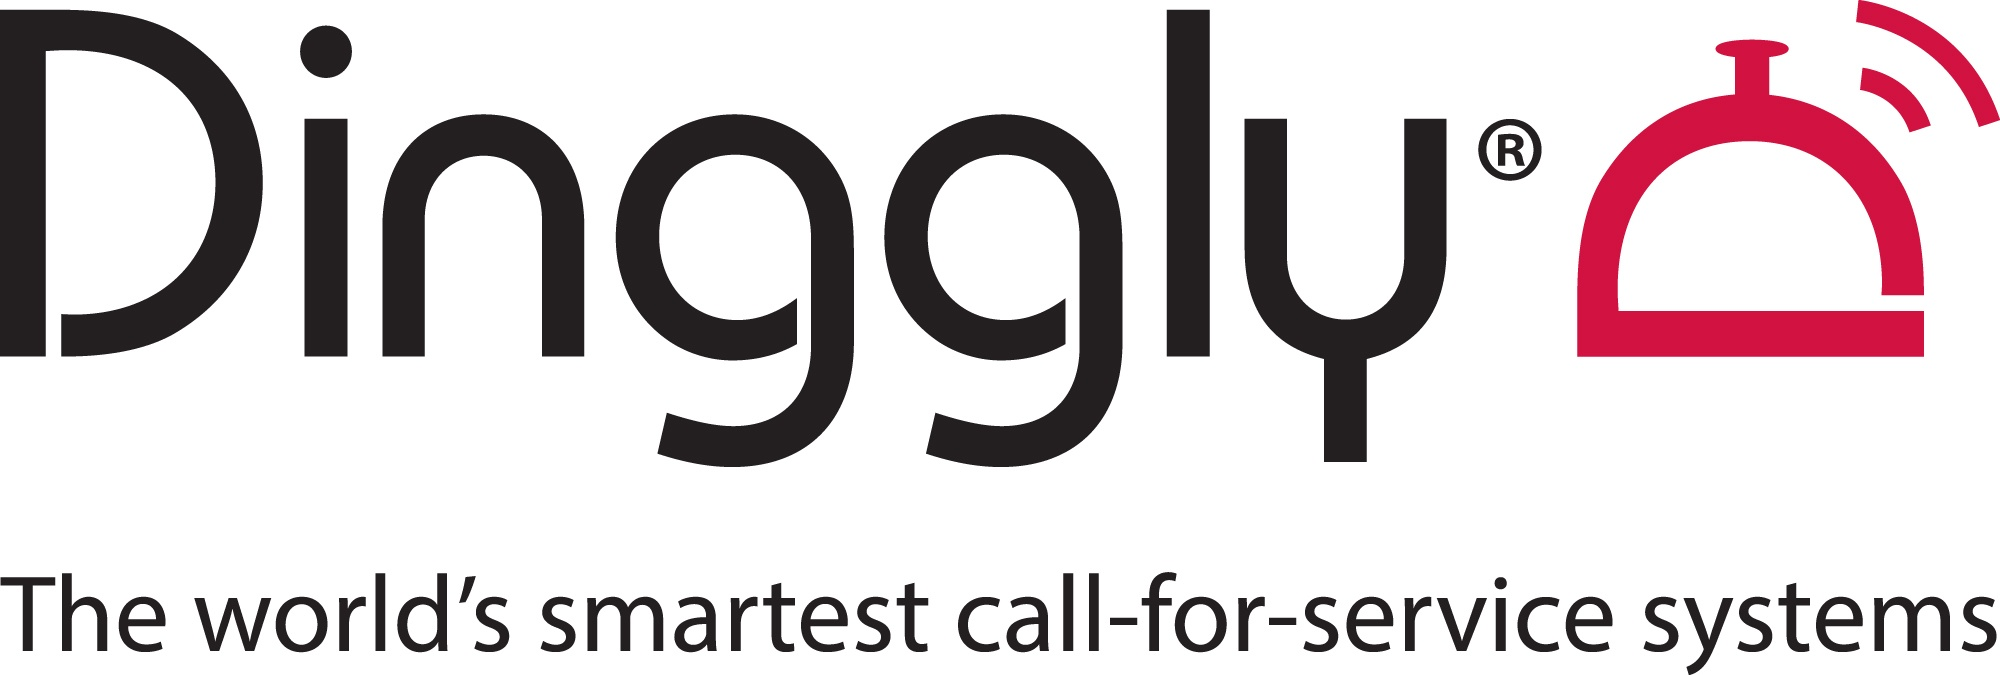 Xn protel Systems to launch Dinggly call-for-service solution at HITEC Dubai 2017